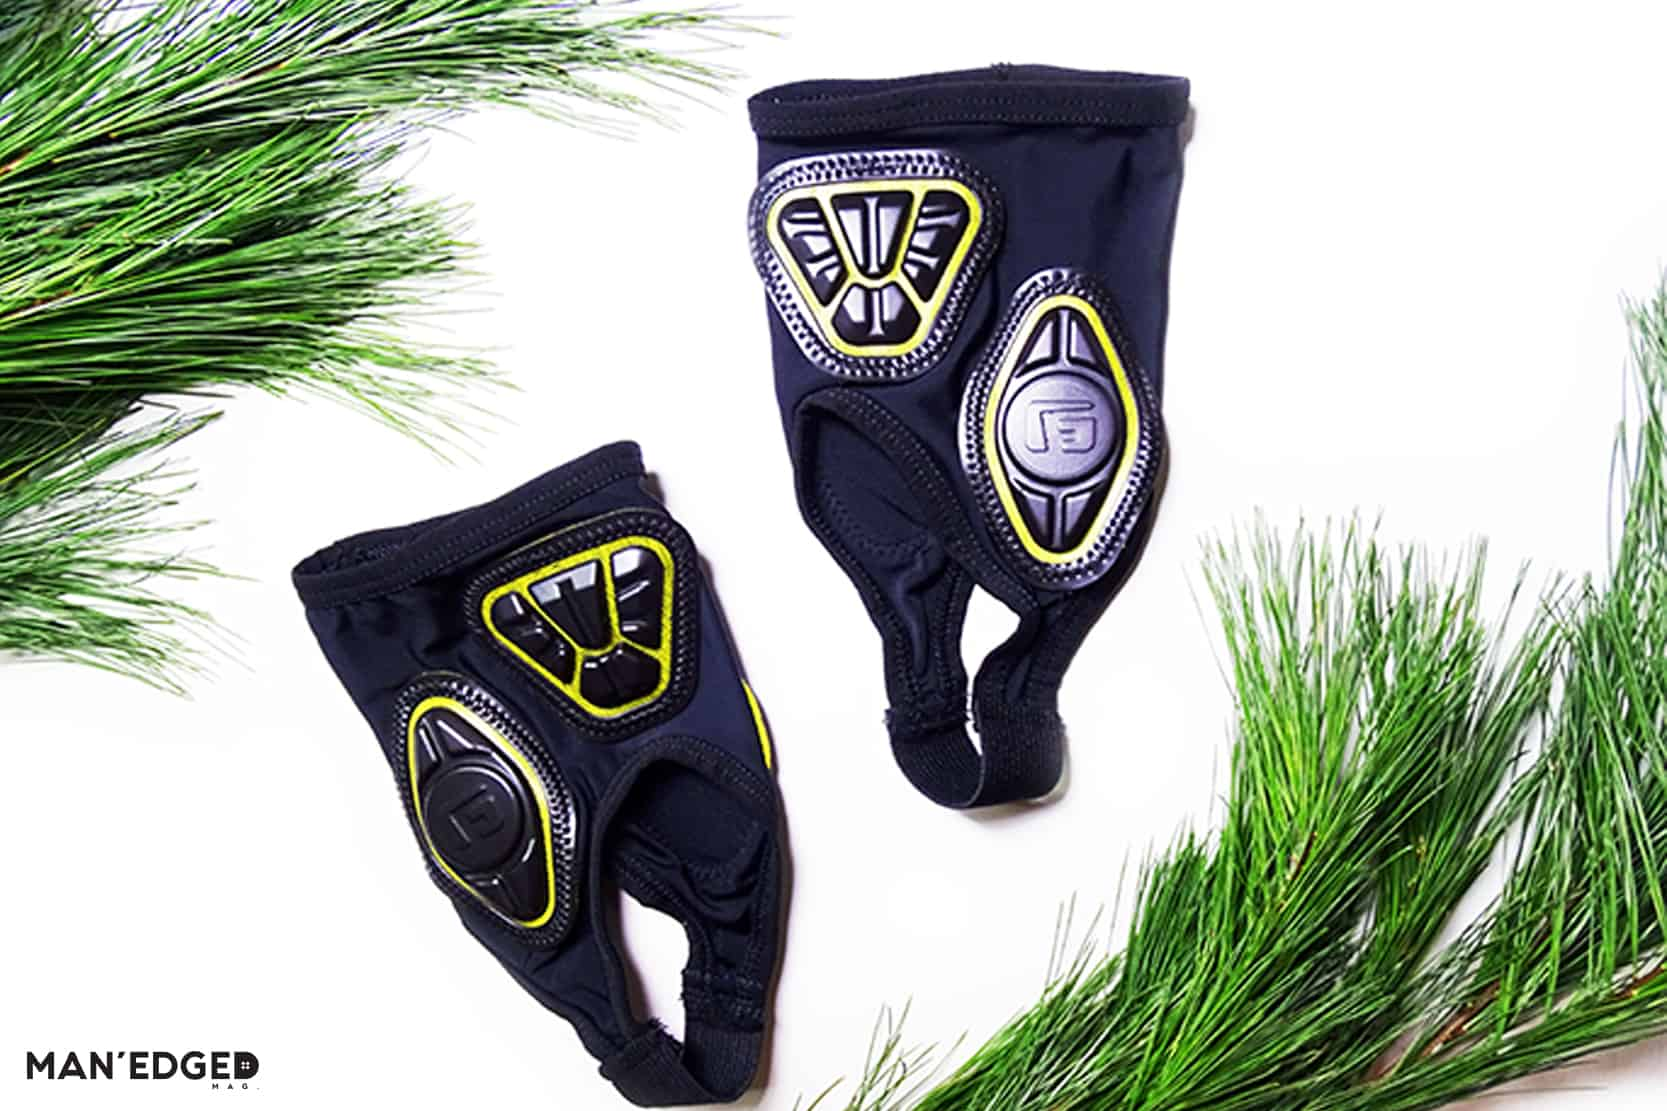 G-FORM ankle protection